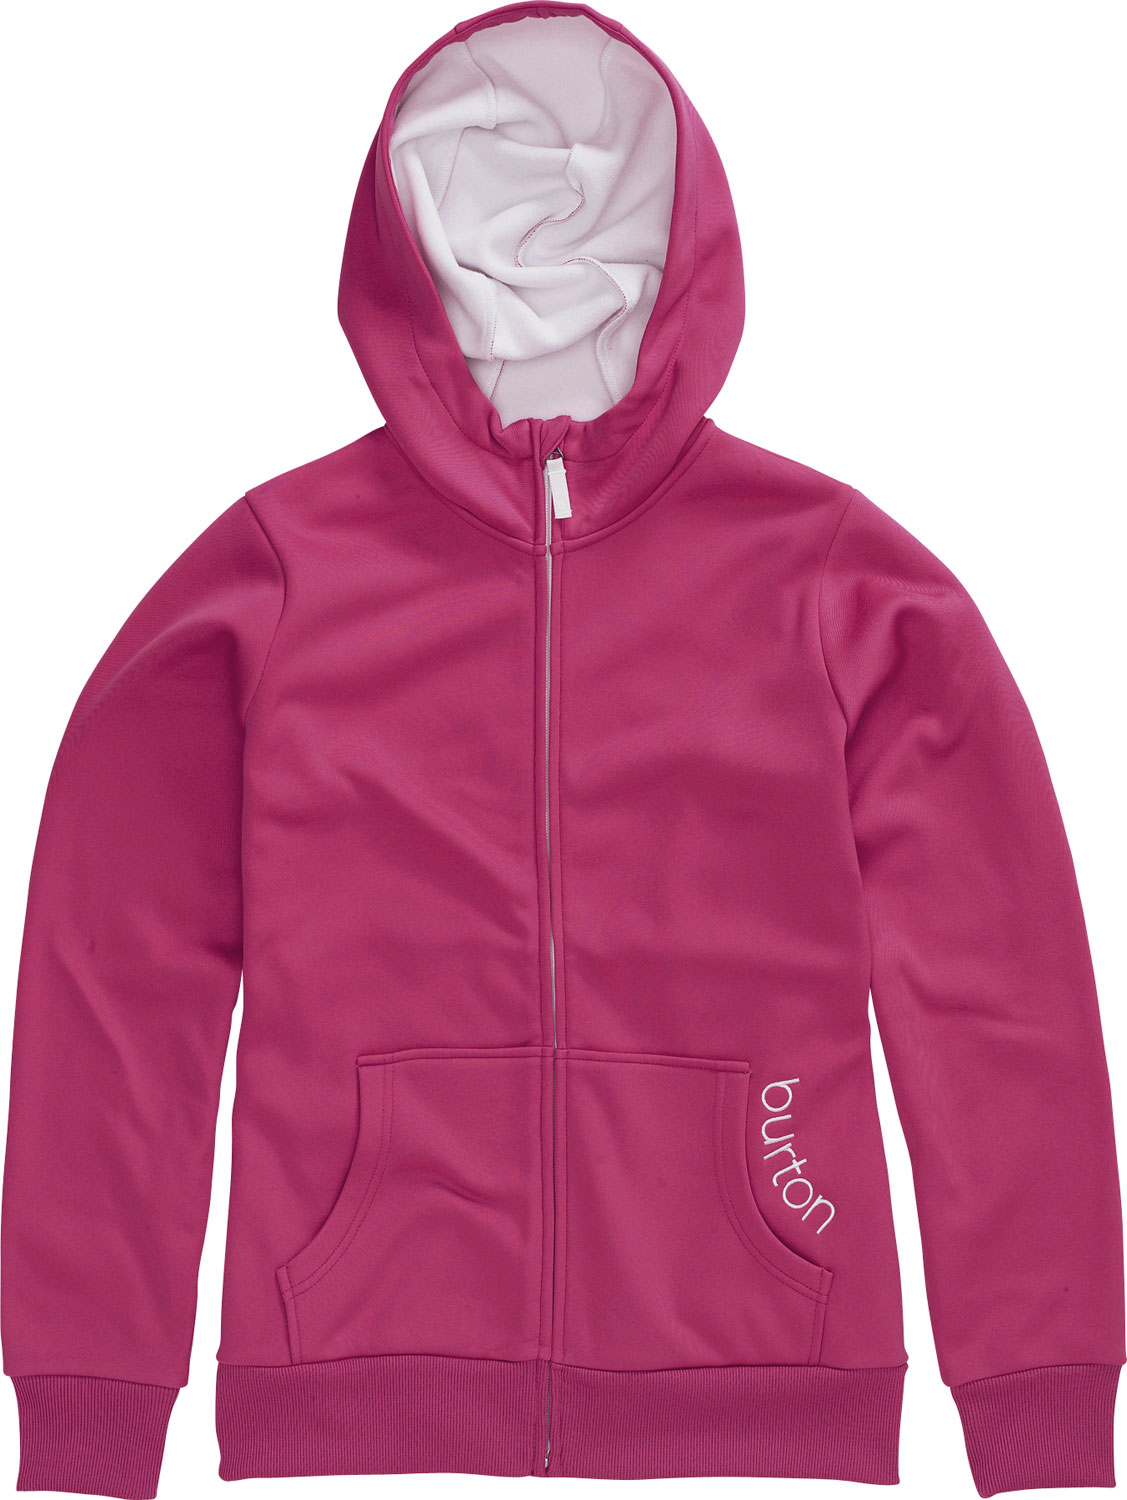 Snowboard Four scoops of fleece, hold the cold cotton; quick-drying heat for mountain or street.Key Features of the Burton Scoop Hoodie: DRYRIDE Thermex Bonded Fleece Fulltime Hood Kangaroo Handwarmer Pocket Ribbed Cuffs and Hem - $51.95